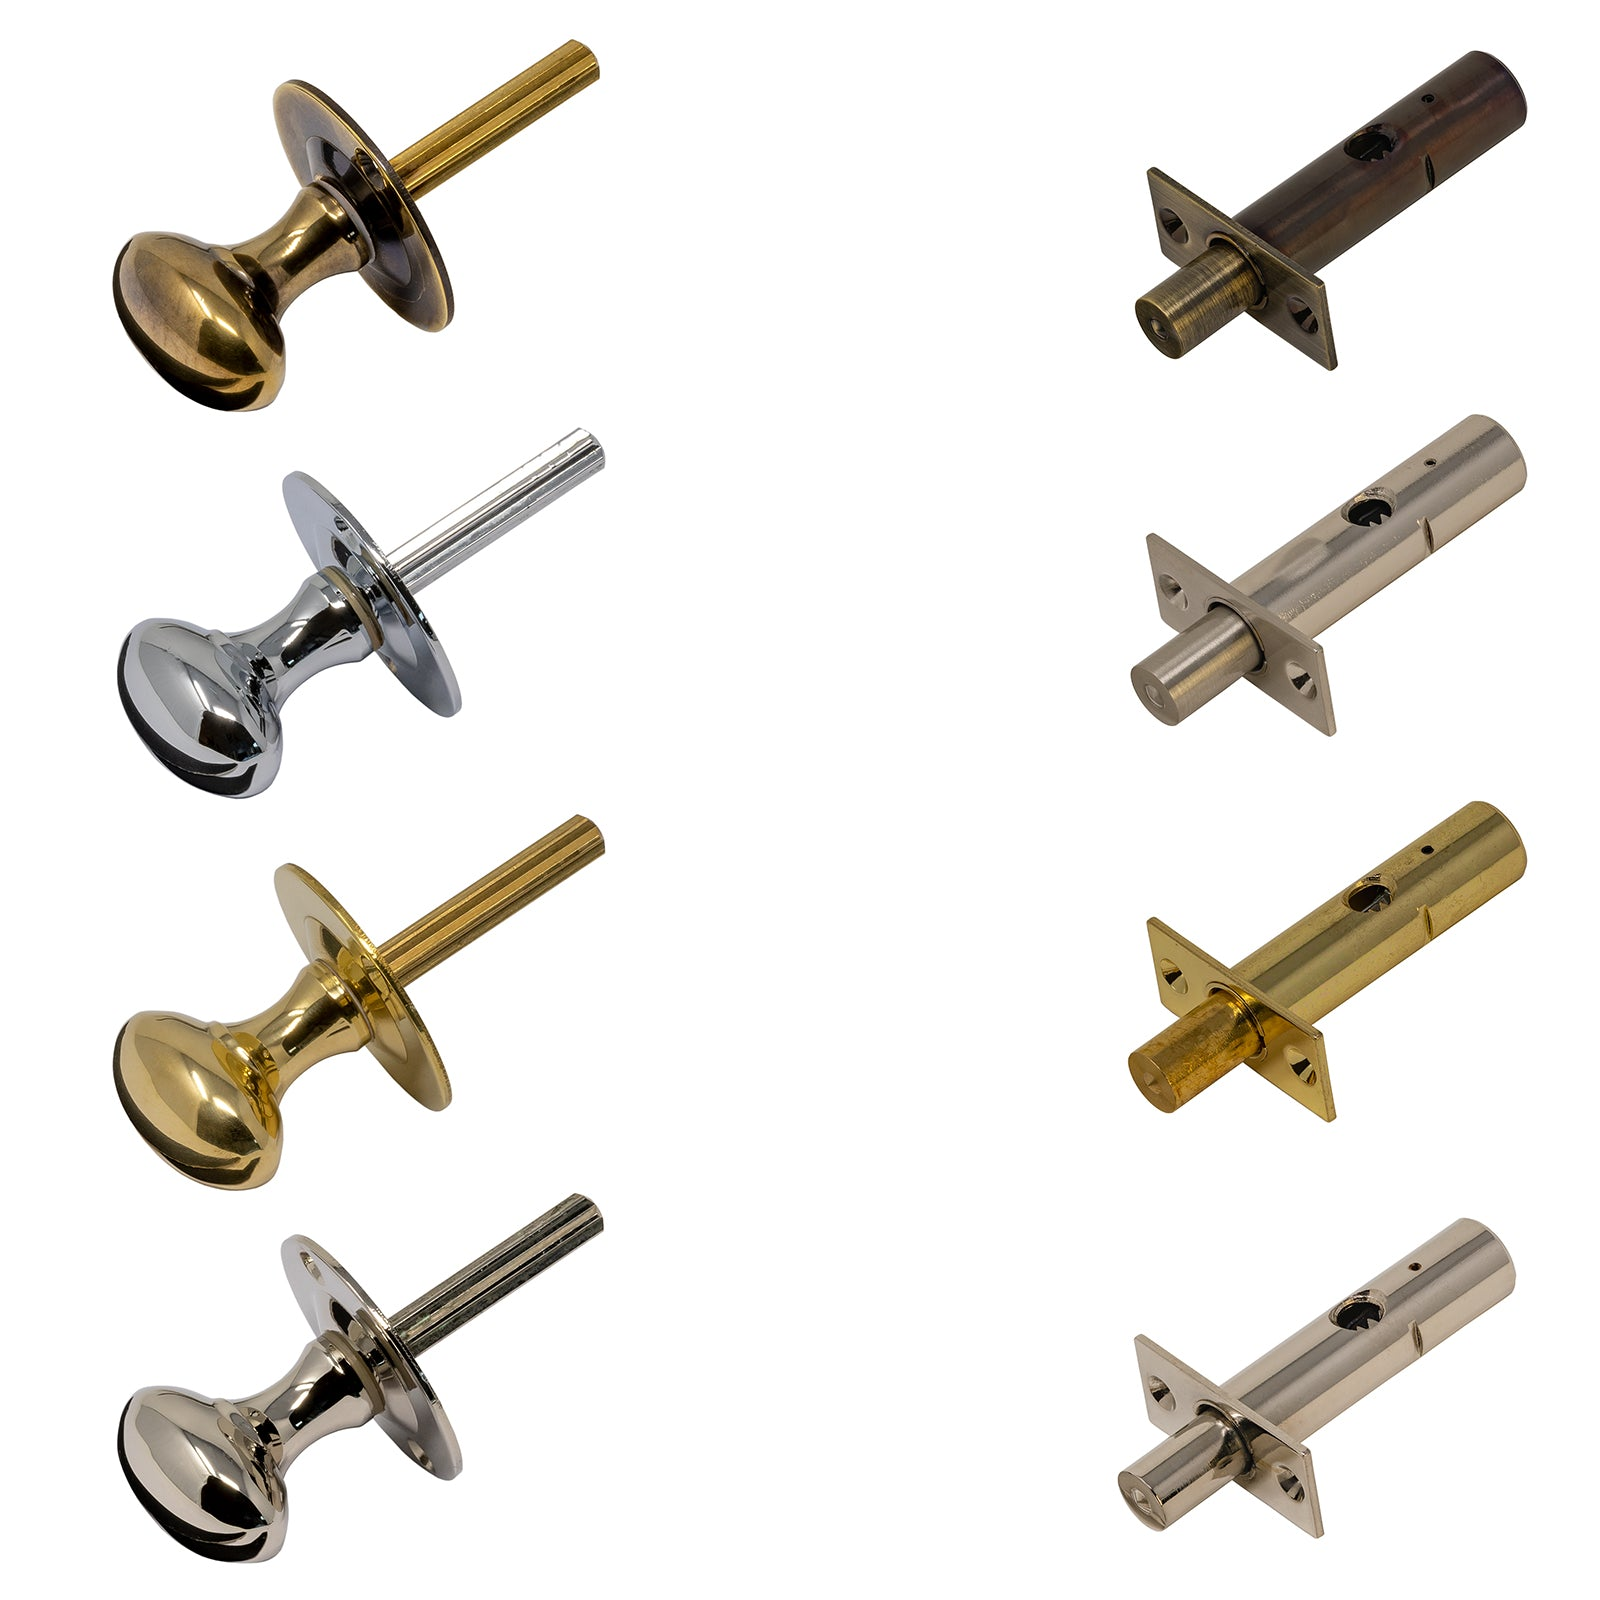 Rack Bolts & Rack Bolt Thumb Turns